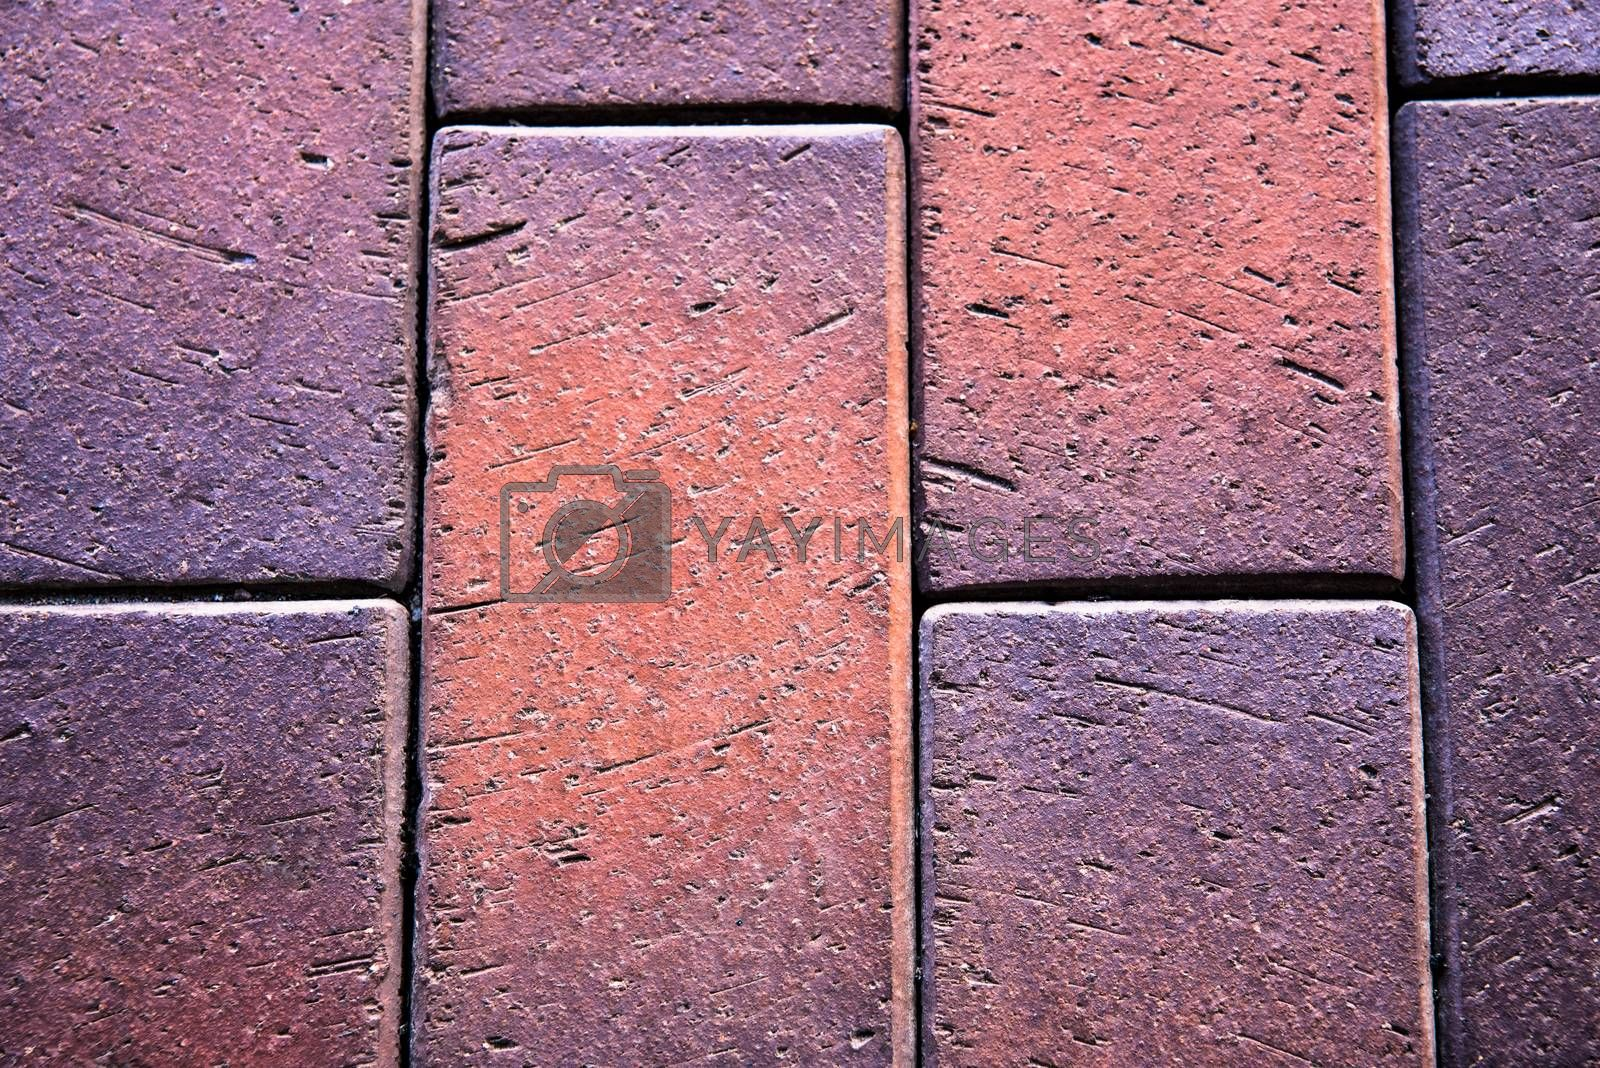 concrete tiled pavement background by Nickstock